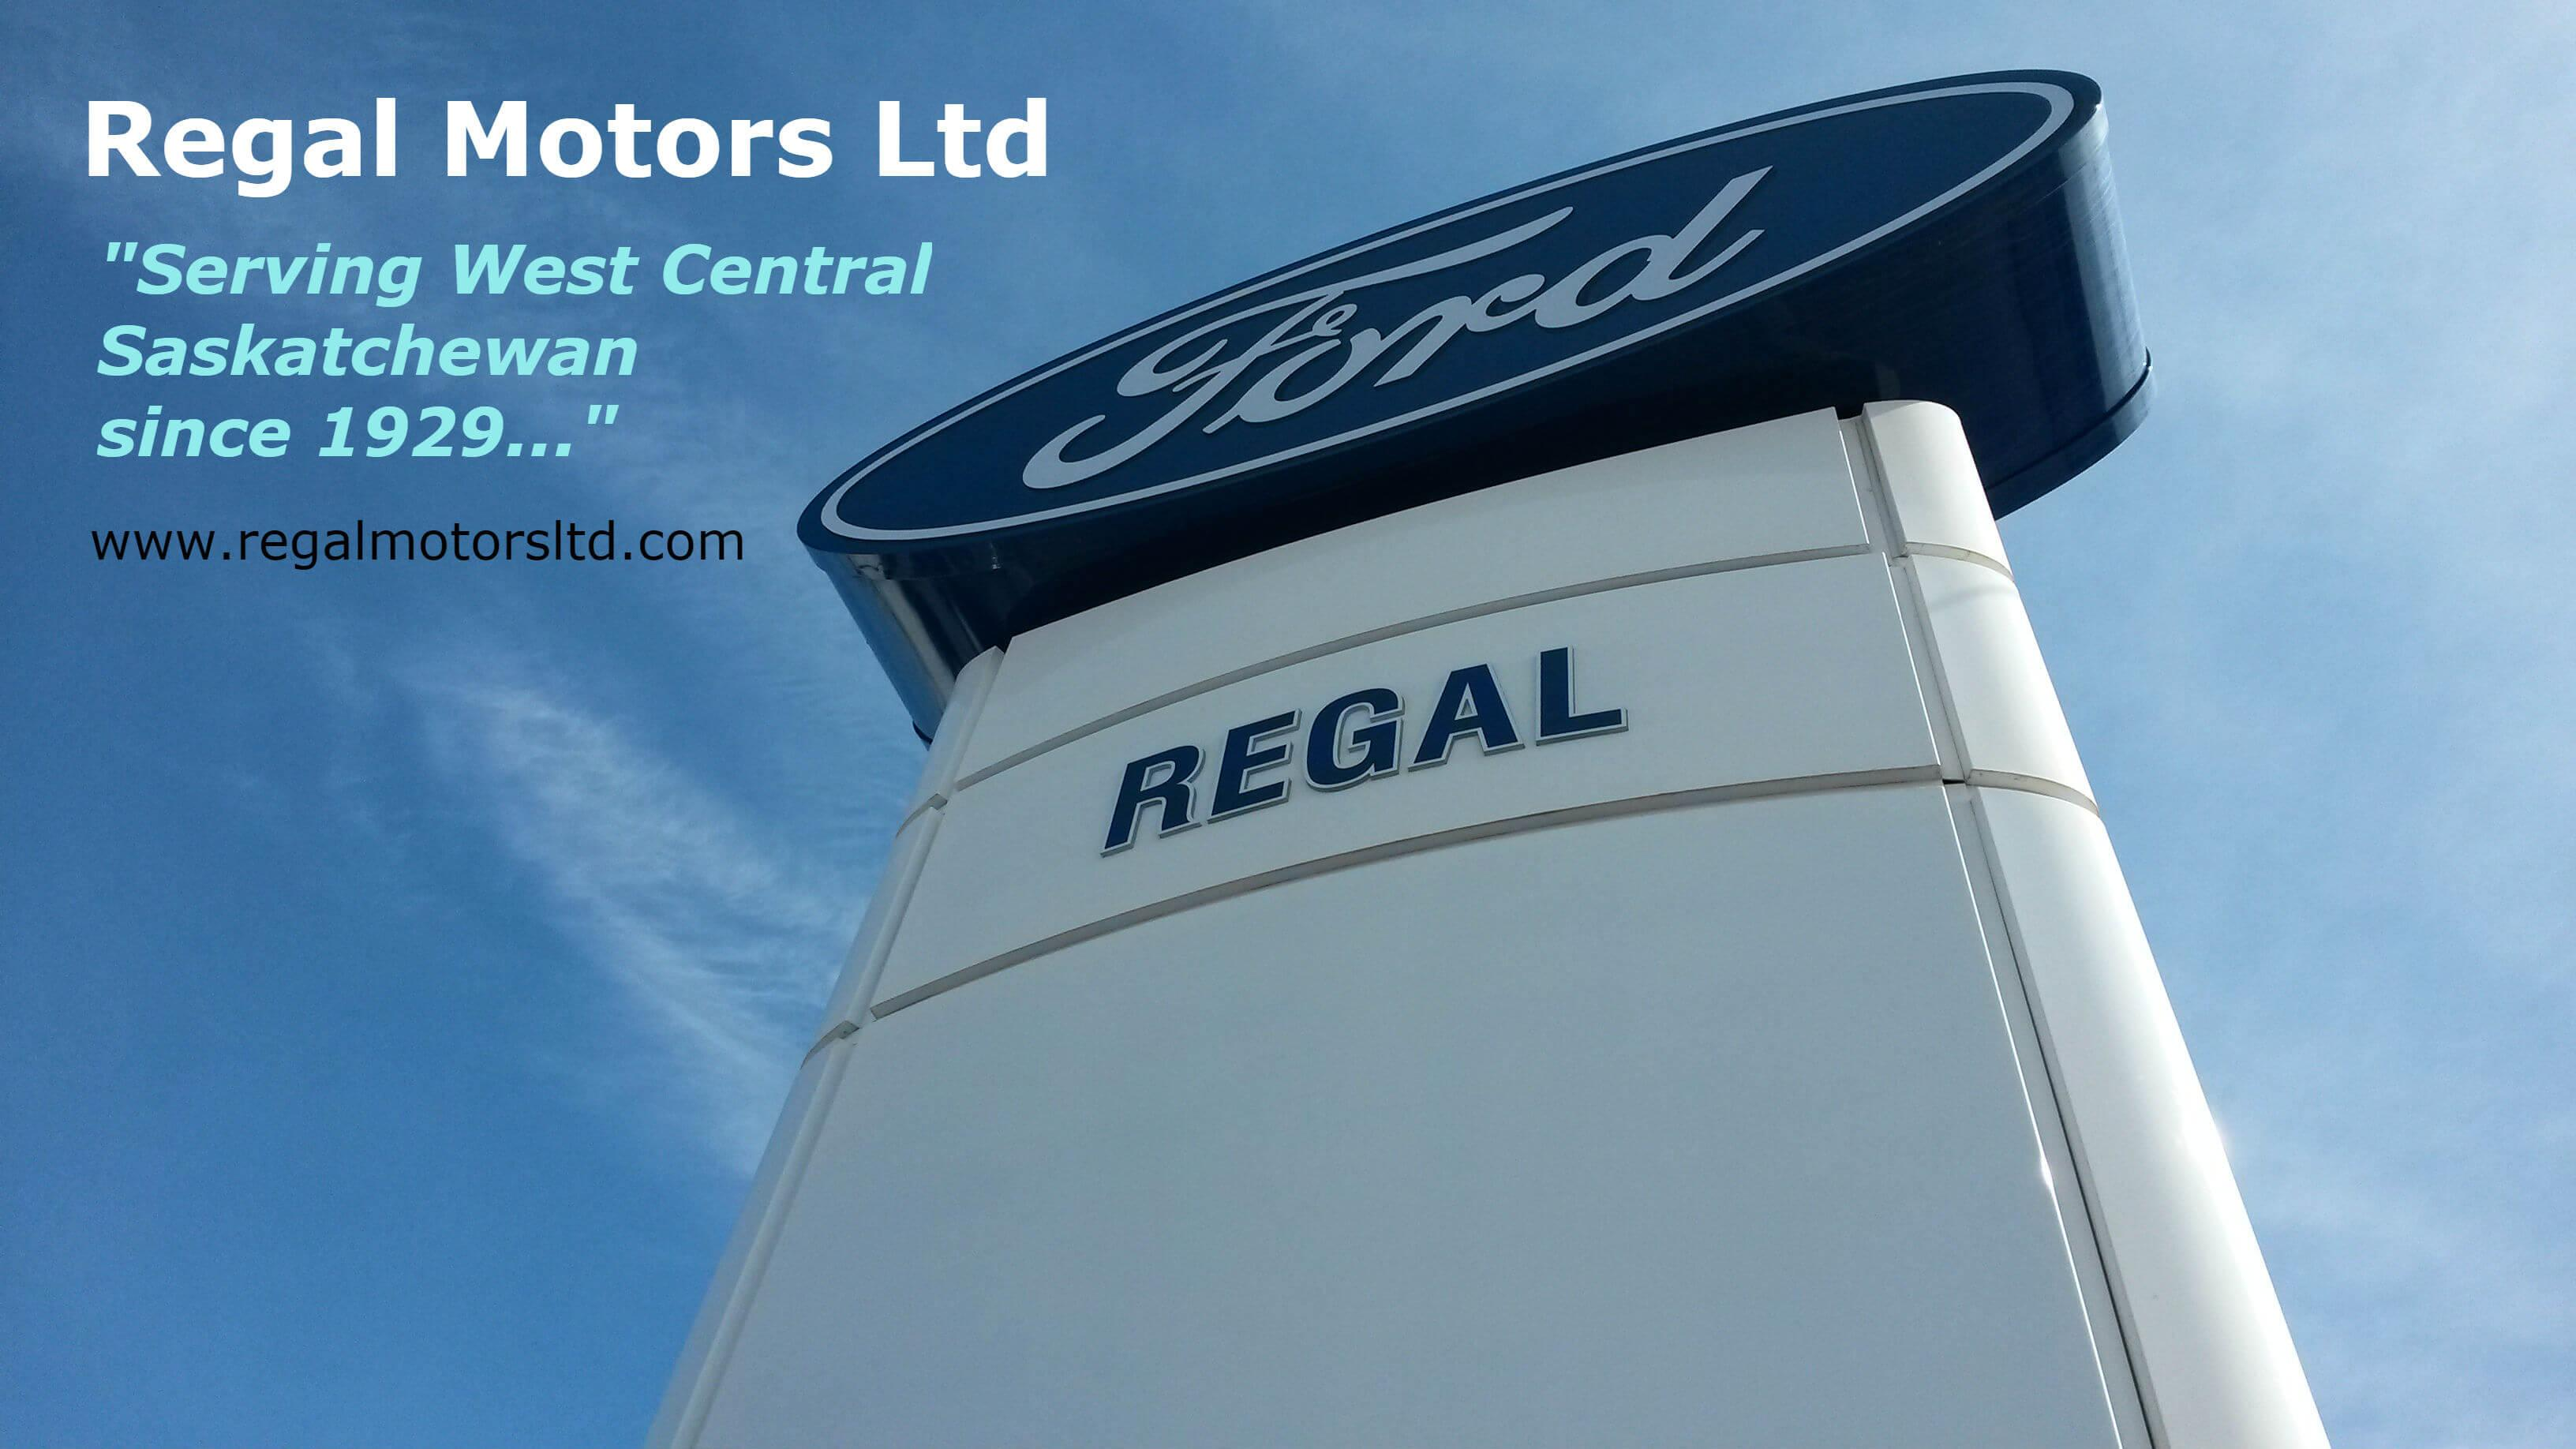 Regal Motors since 1929